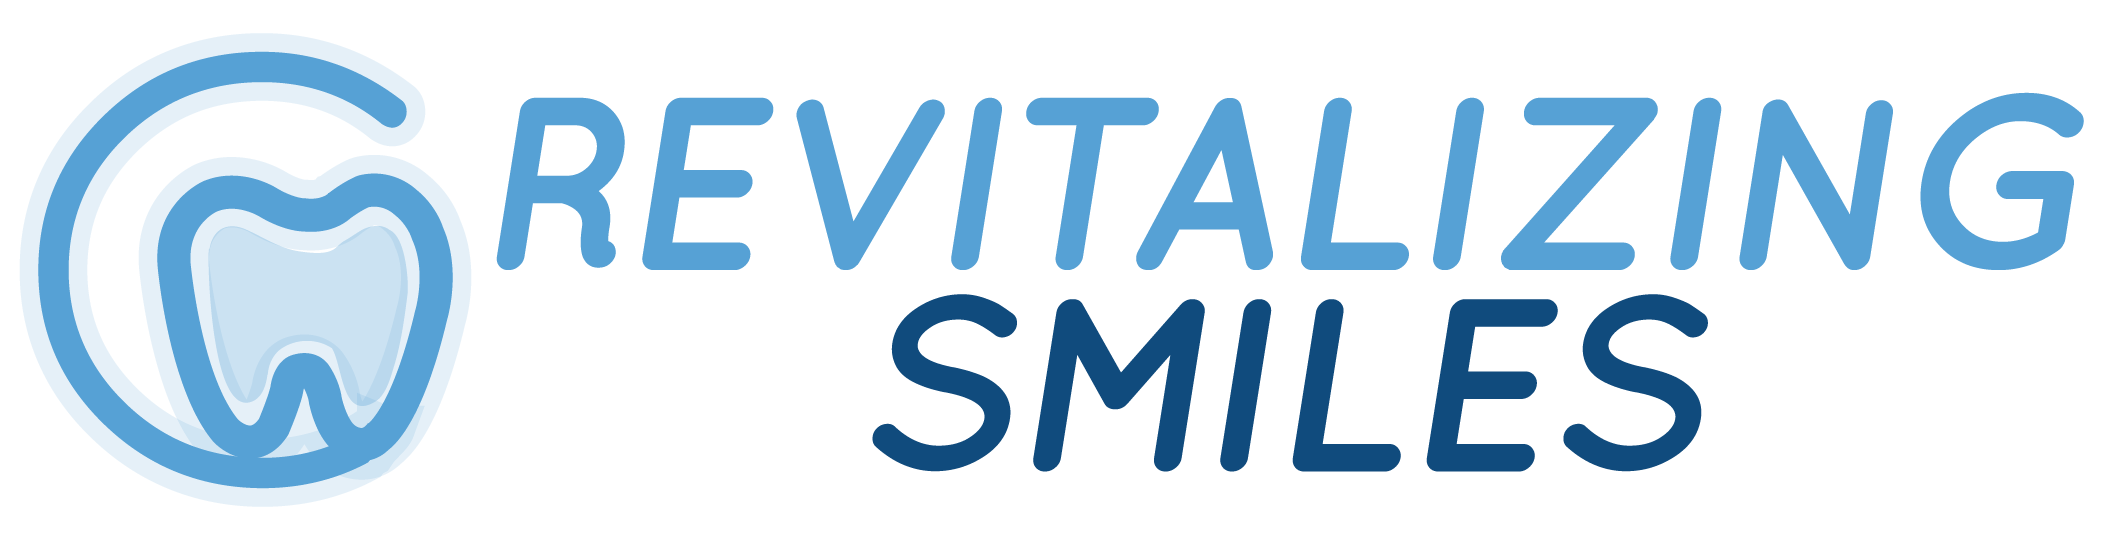 Revitalizing Smile